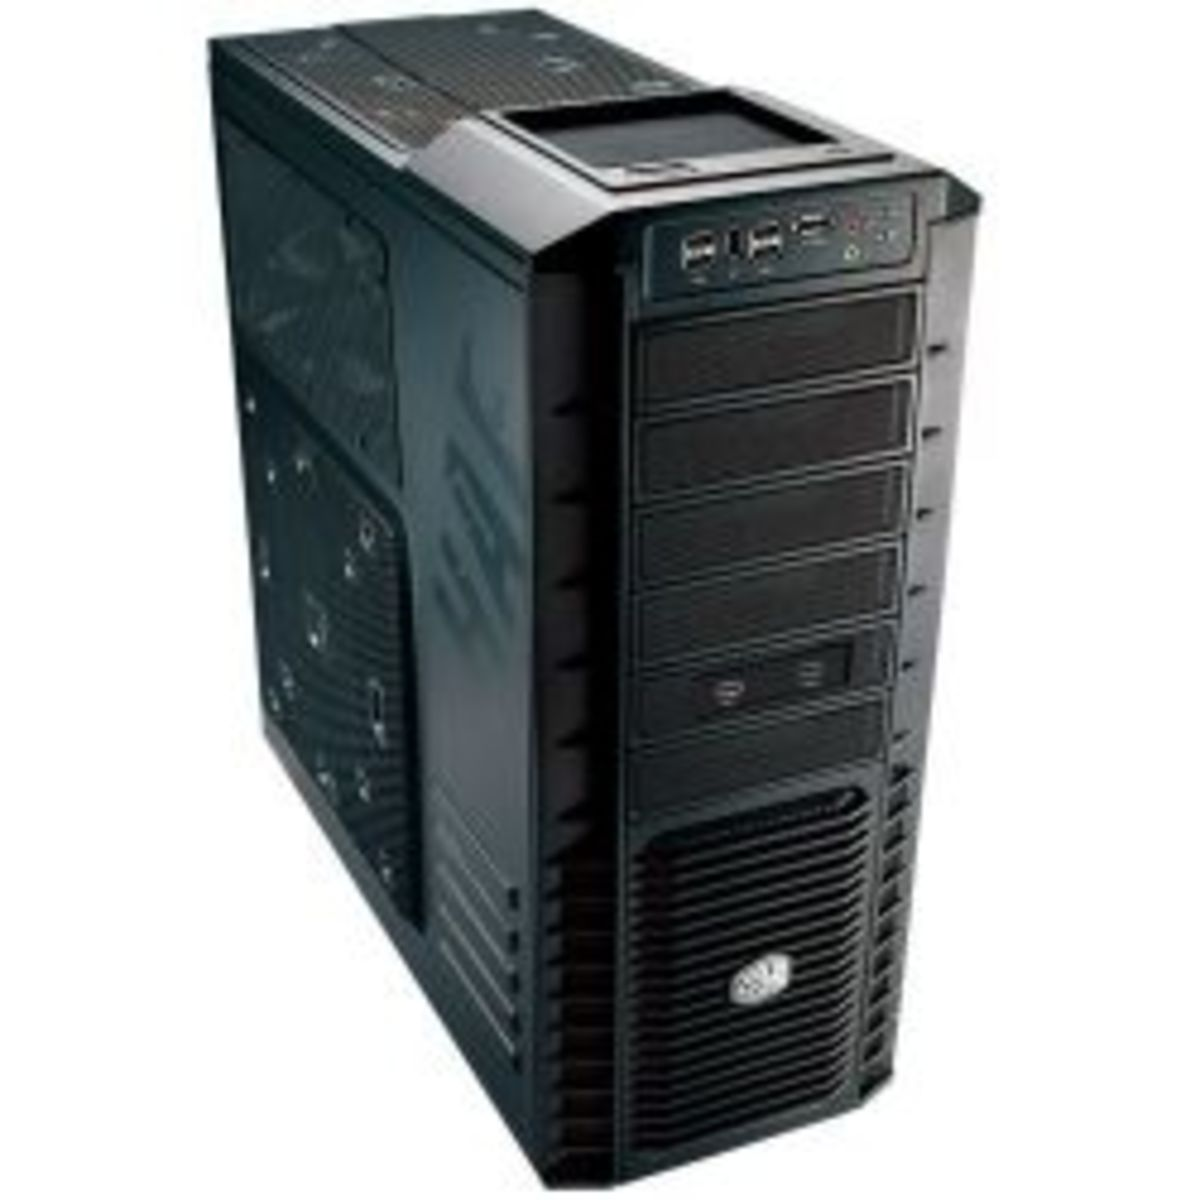 HAF 932 Full Tower PC Case